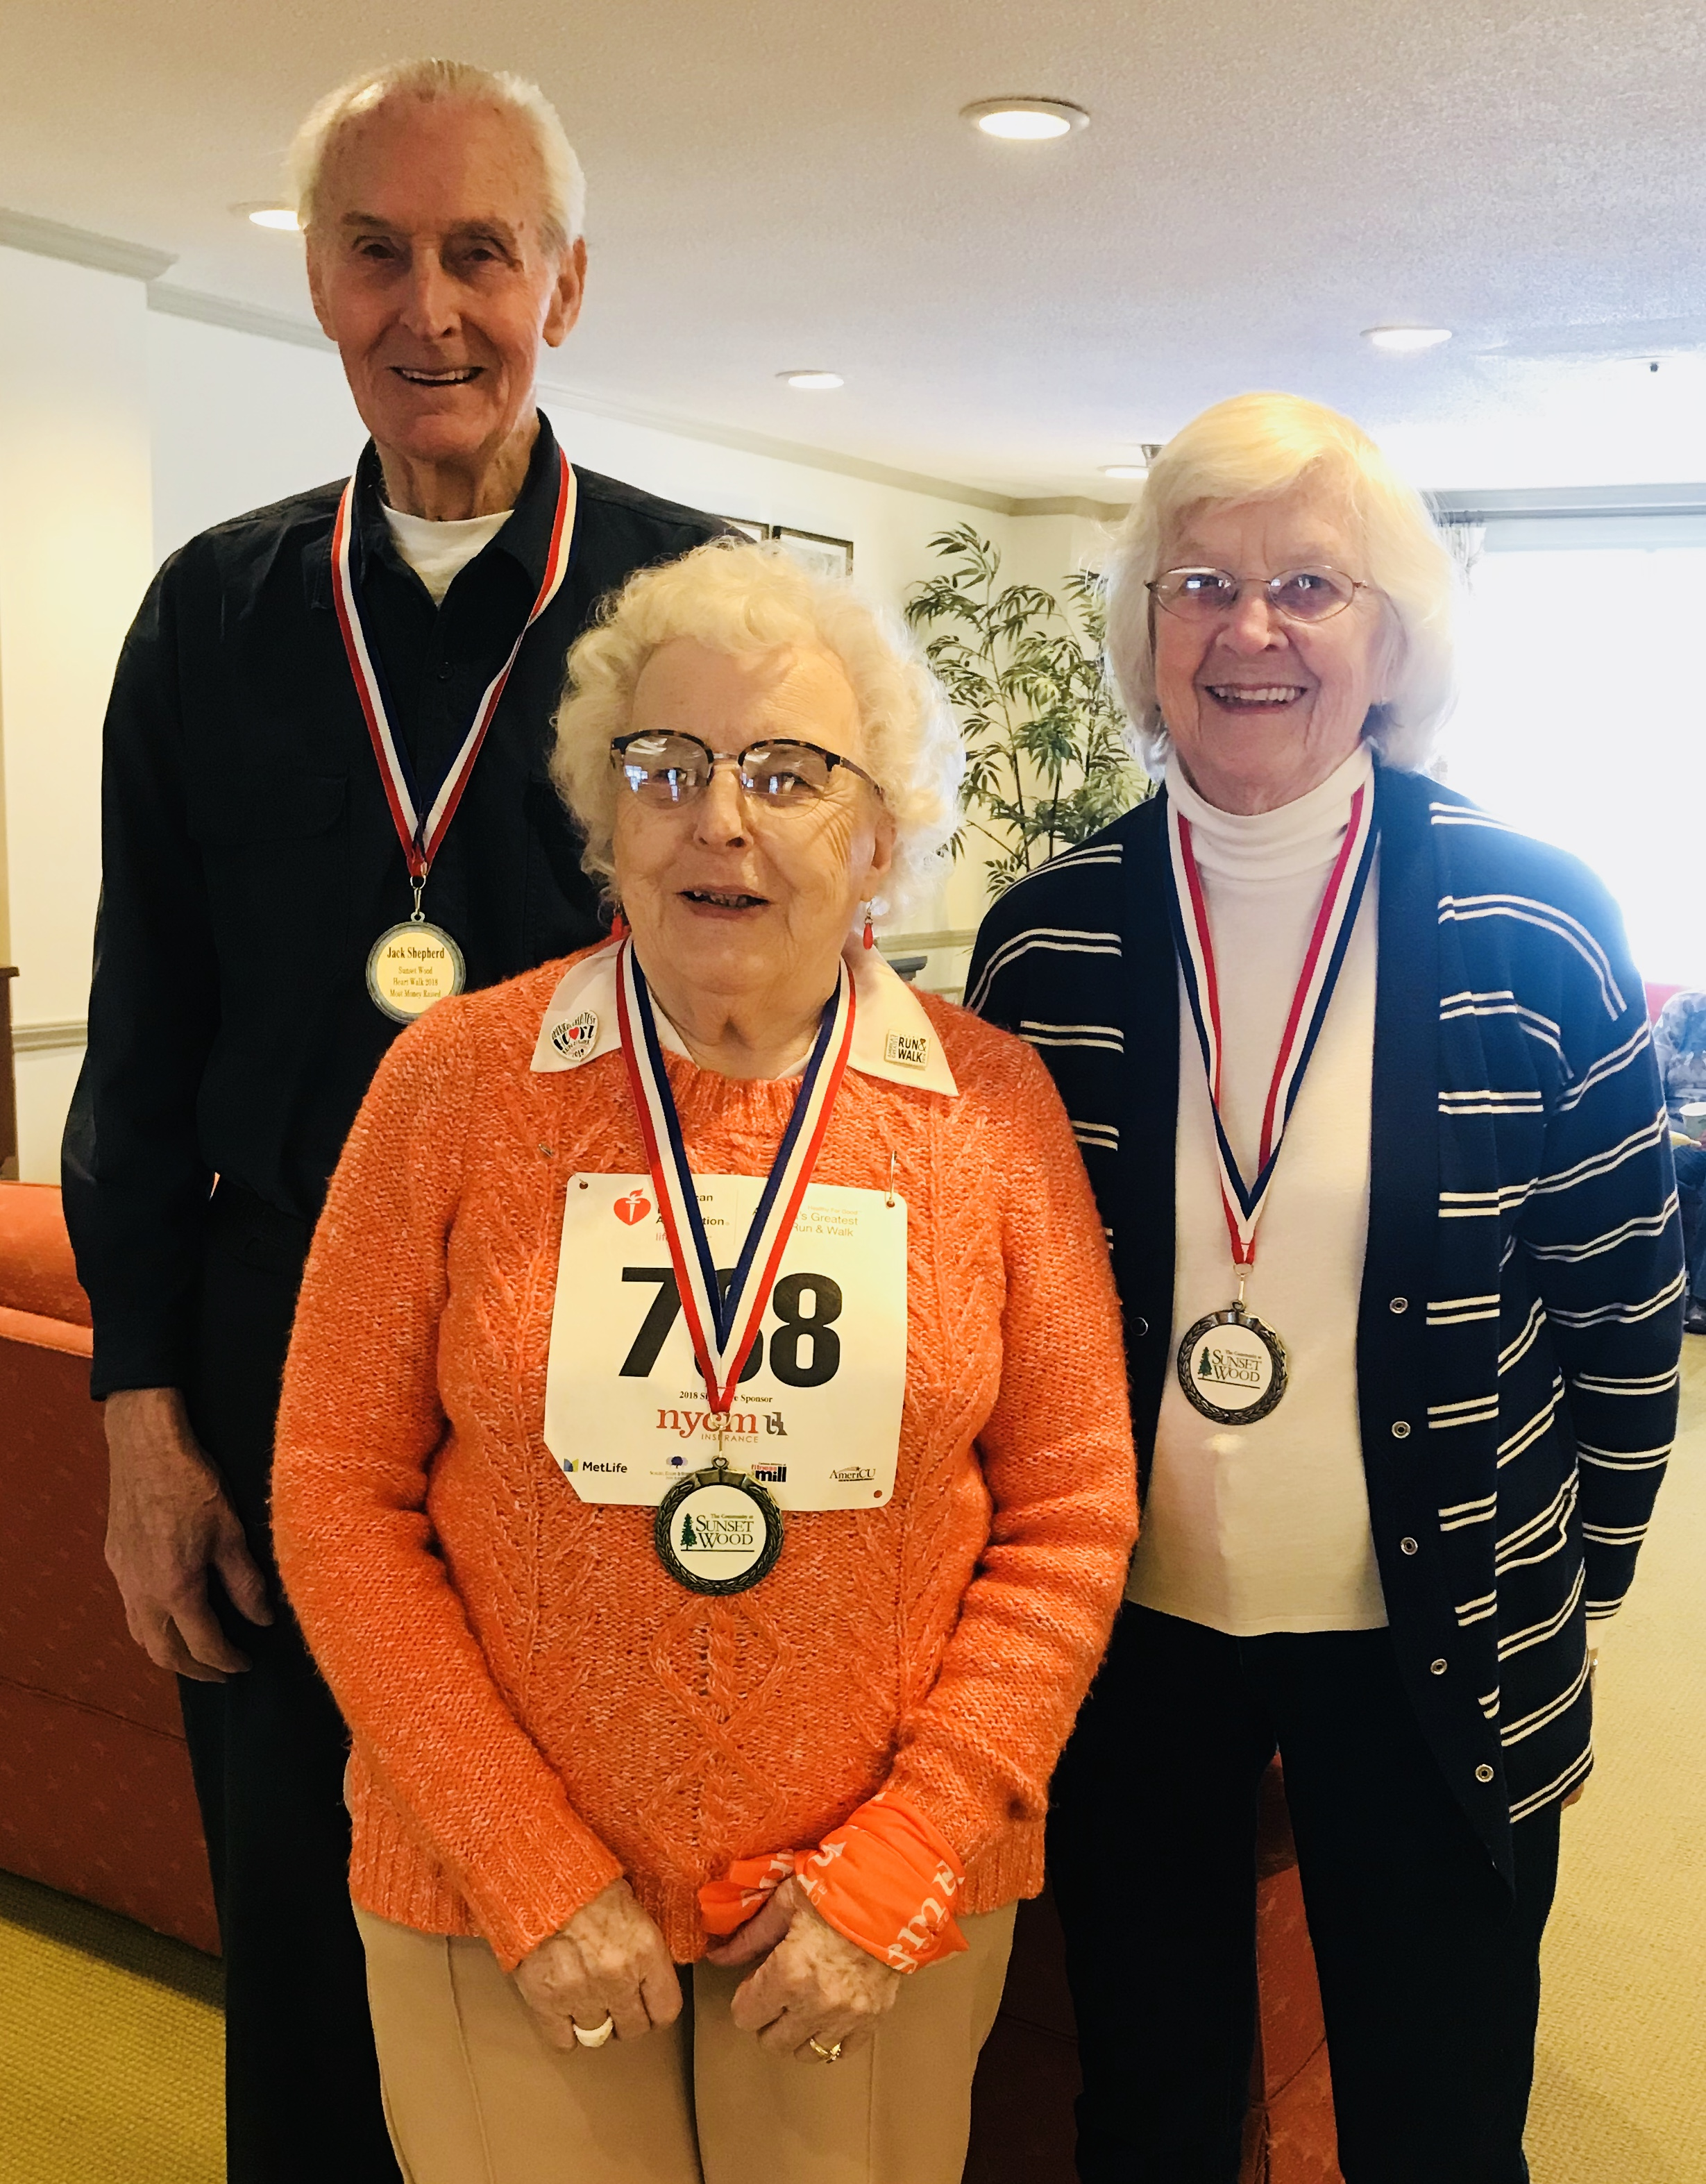 """Our Winners of Sunset Wood's """"Most Money Raised Awards!"""" Eileen Shepherd with $310.00 (Right), Jack Shepherd with $290.00 (Left) and Barbara Munde with $210.00 (Middle)"""